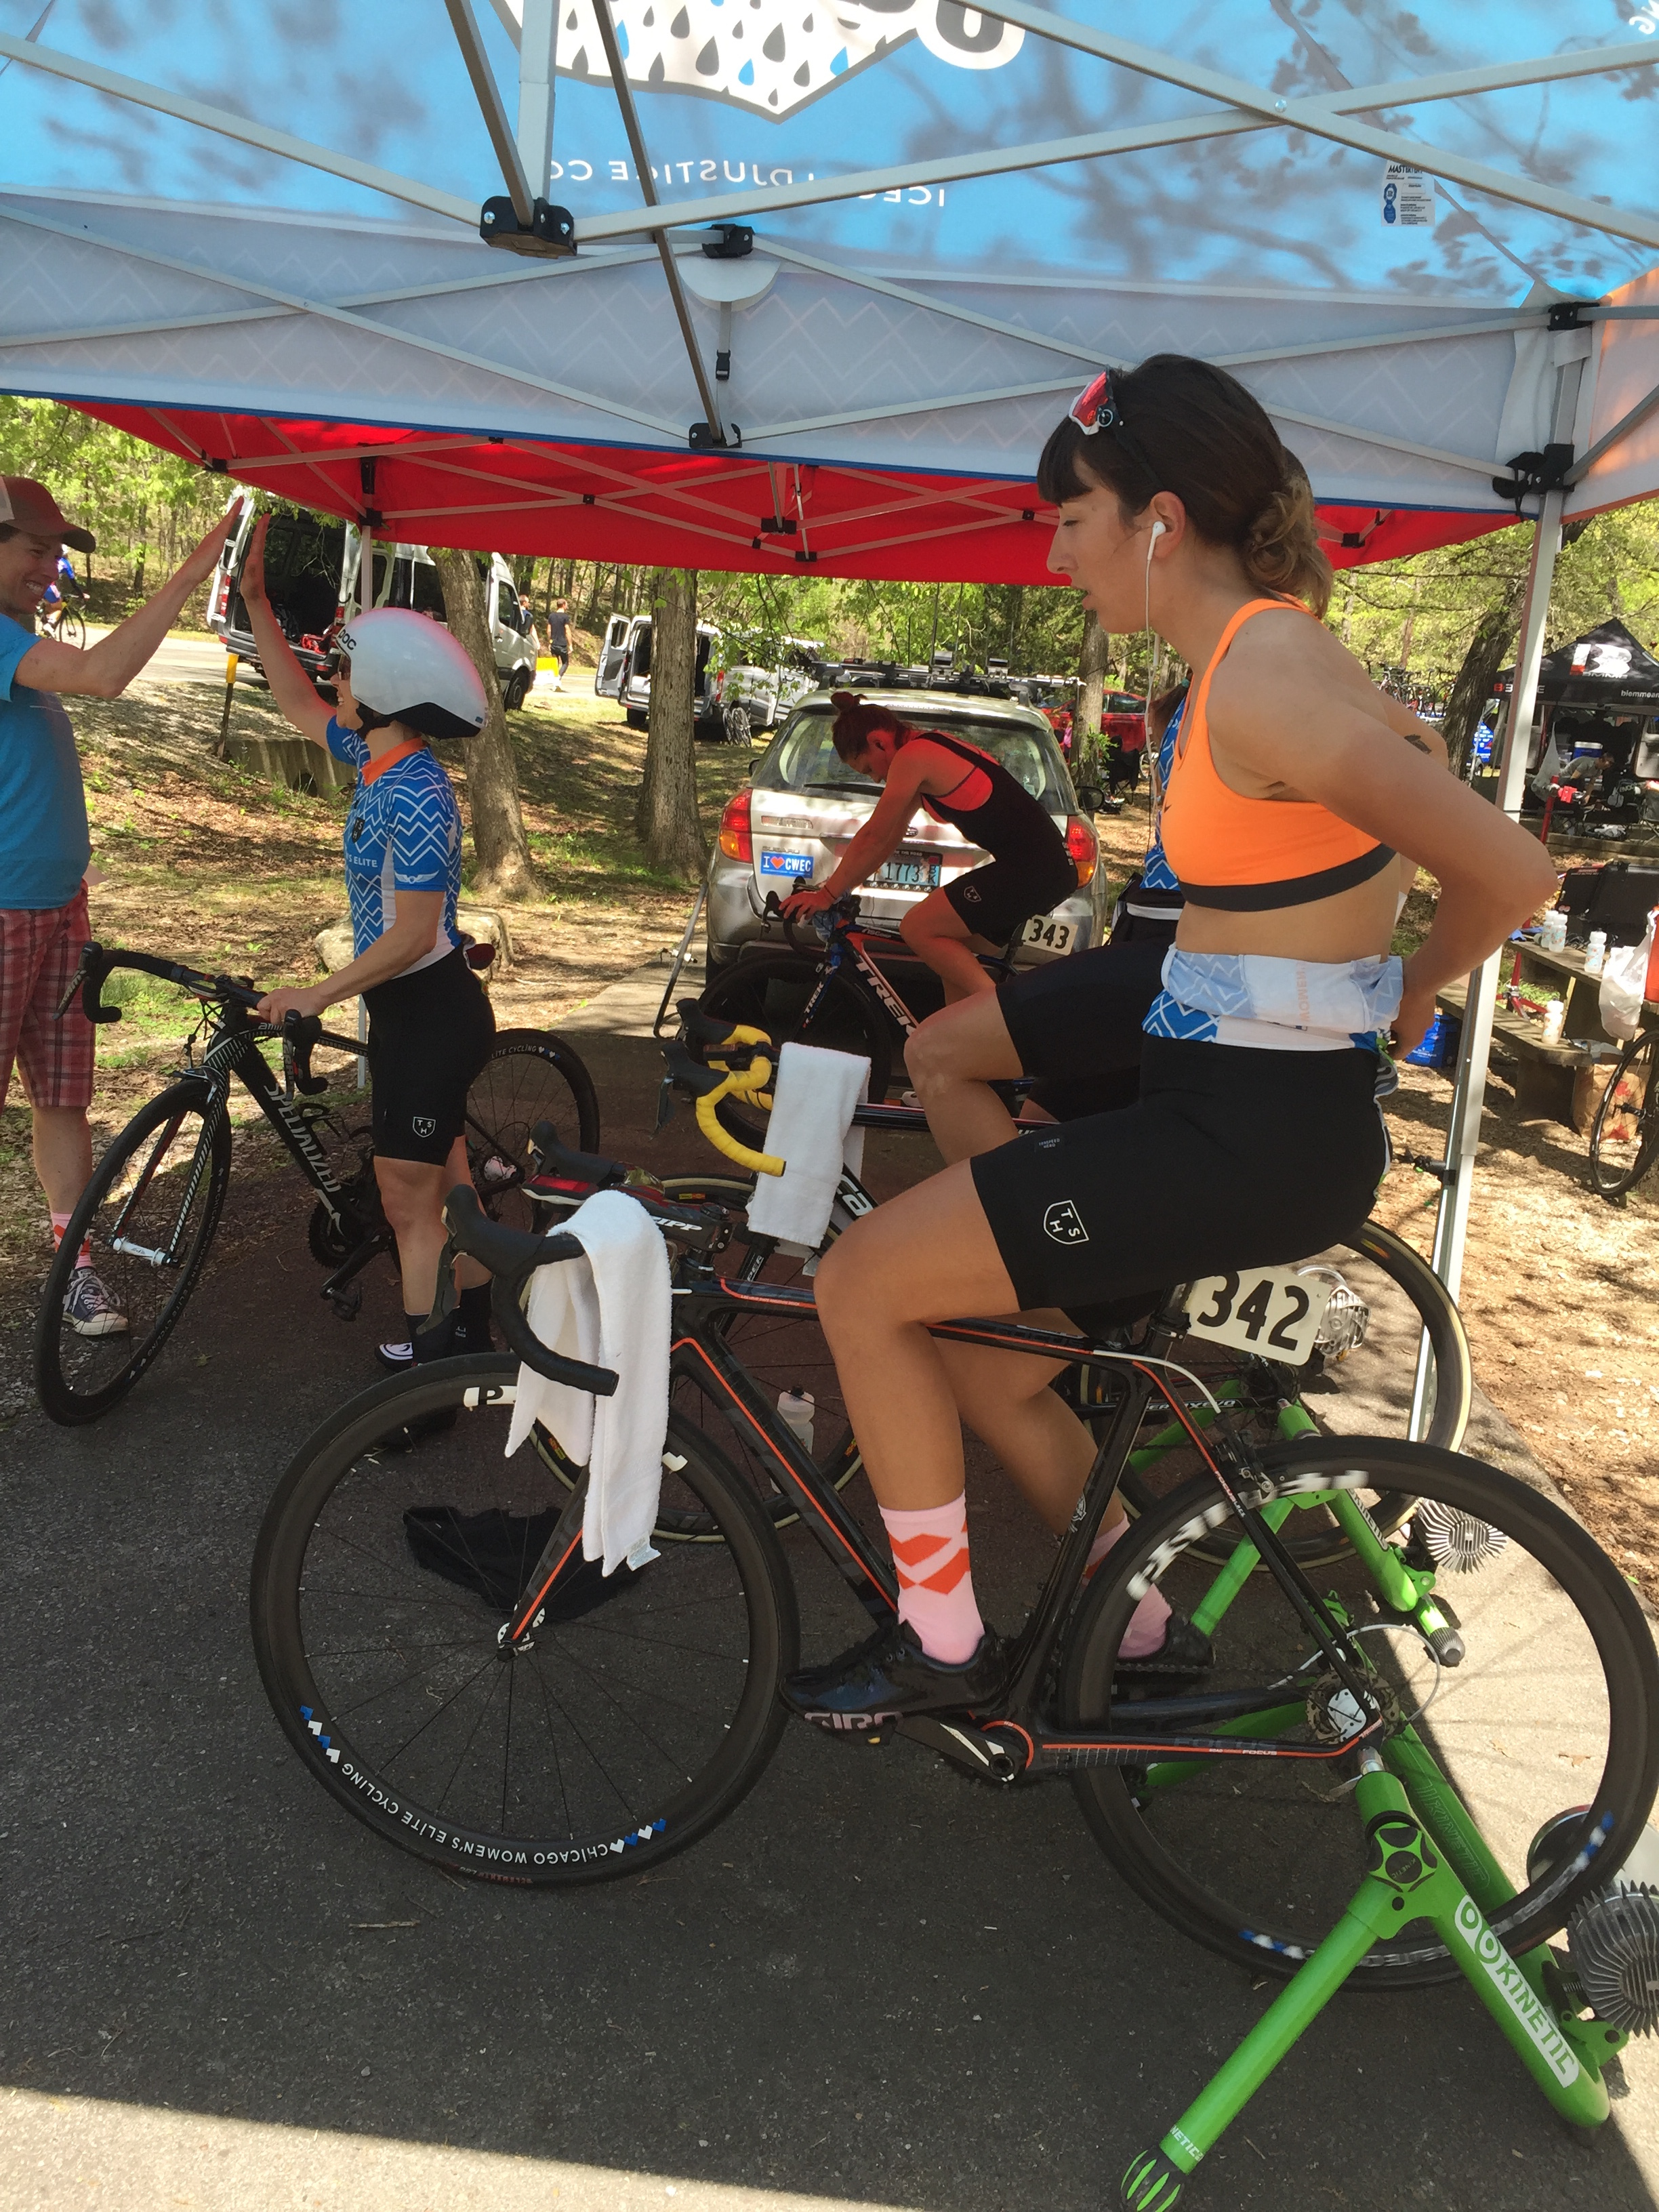 Chicago Women's Elite Cycling Team Warming up for the Time Trail at Joe Martin Stage Race